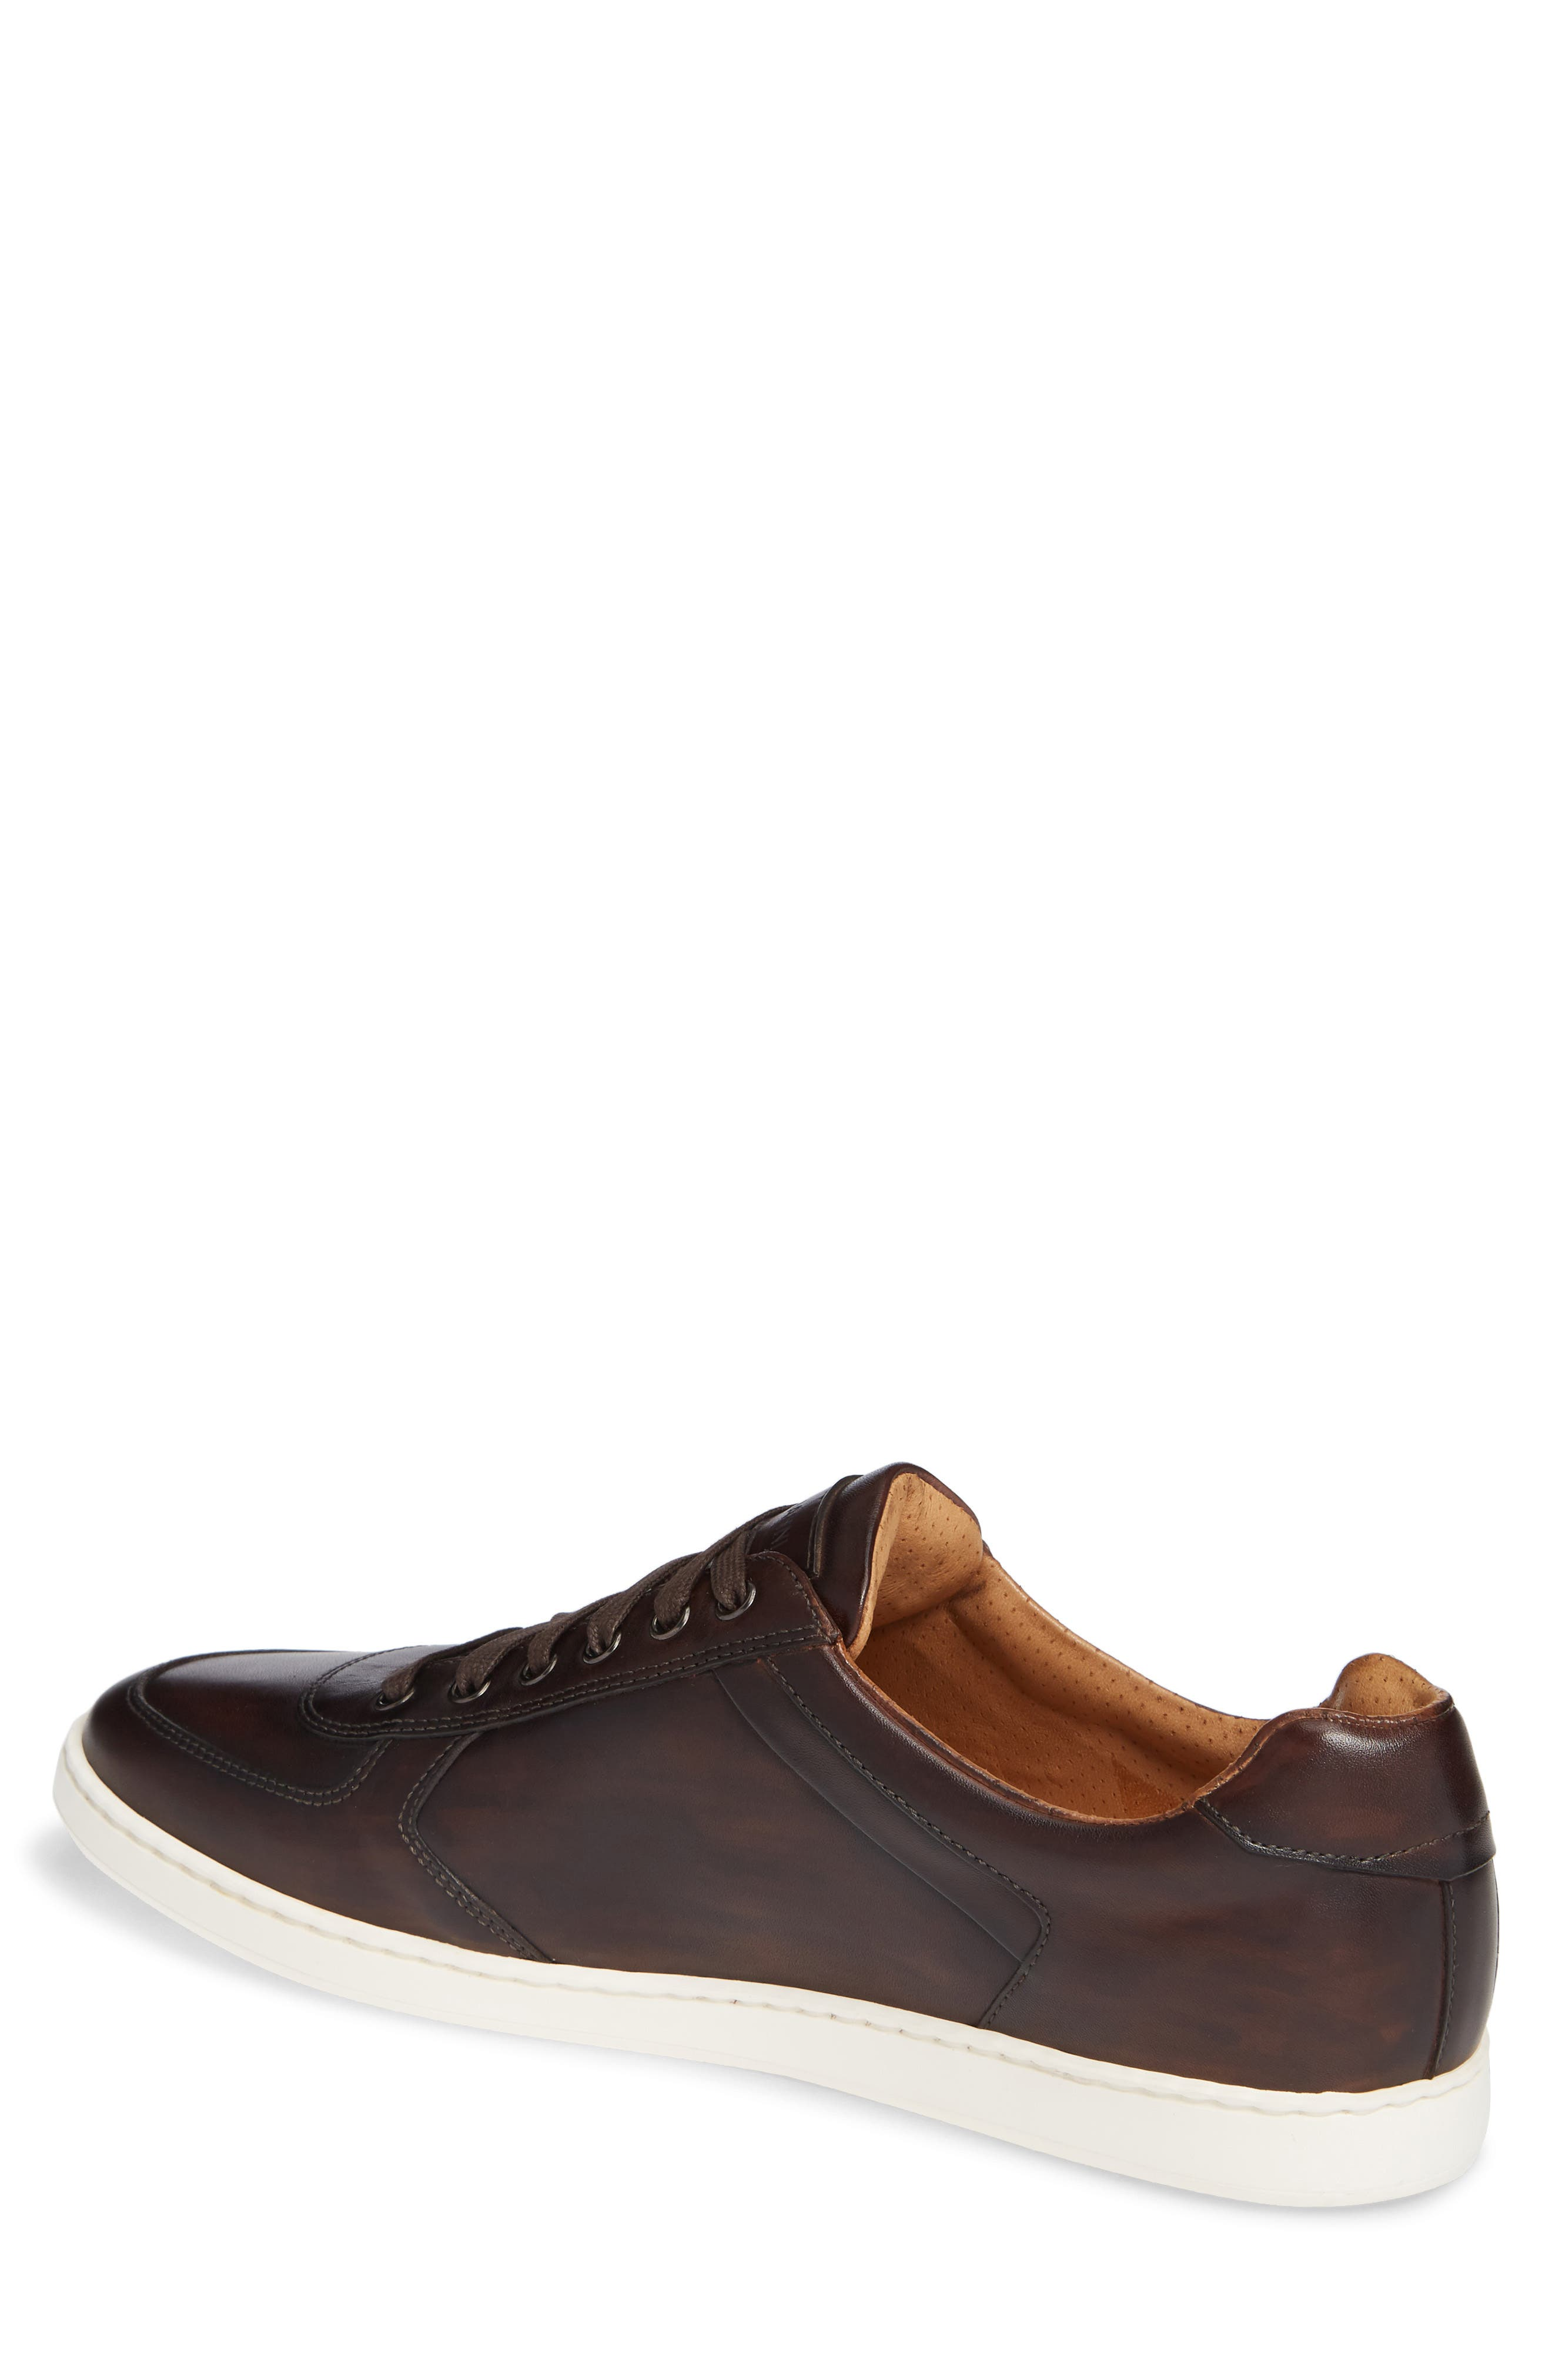 Echo Sneaker,                             Alternate thumbnail 2, color,                             BROWN LEATHER